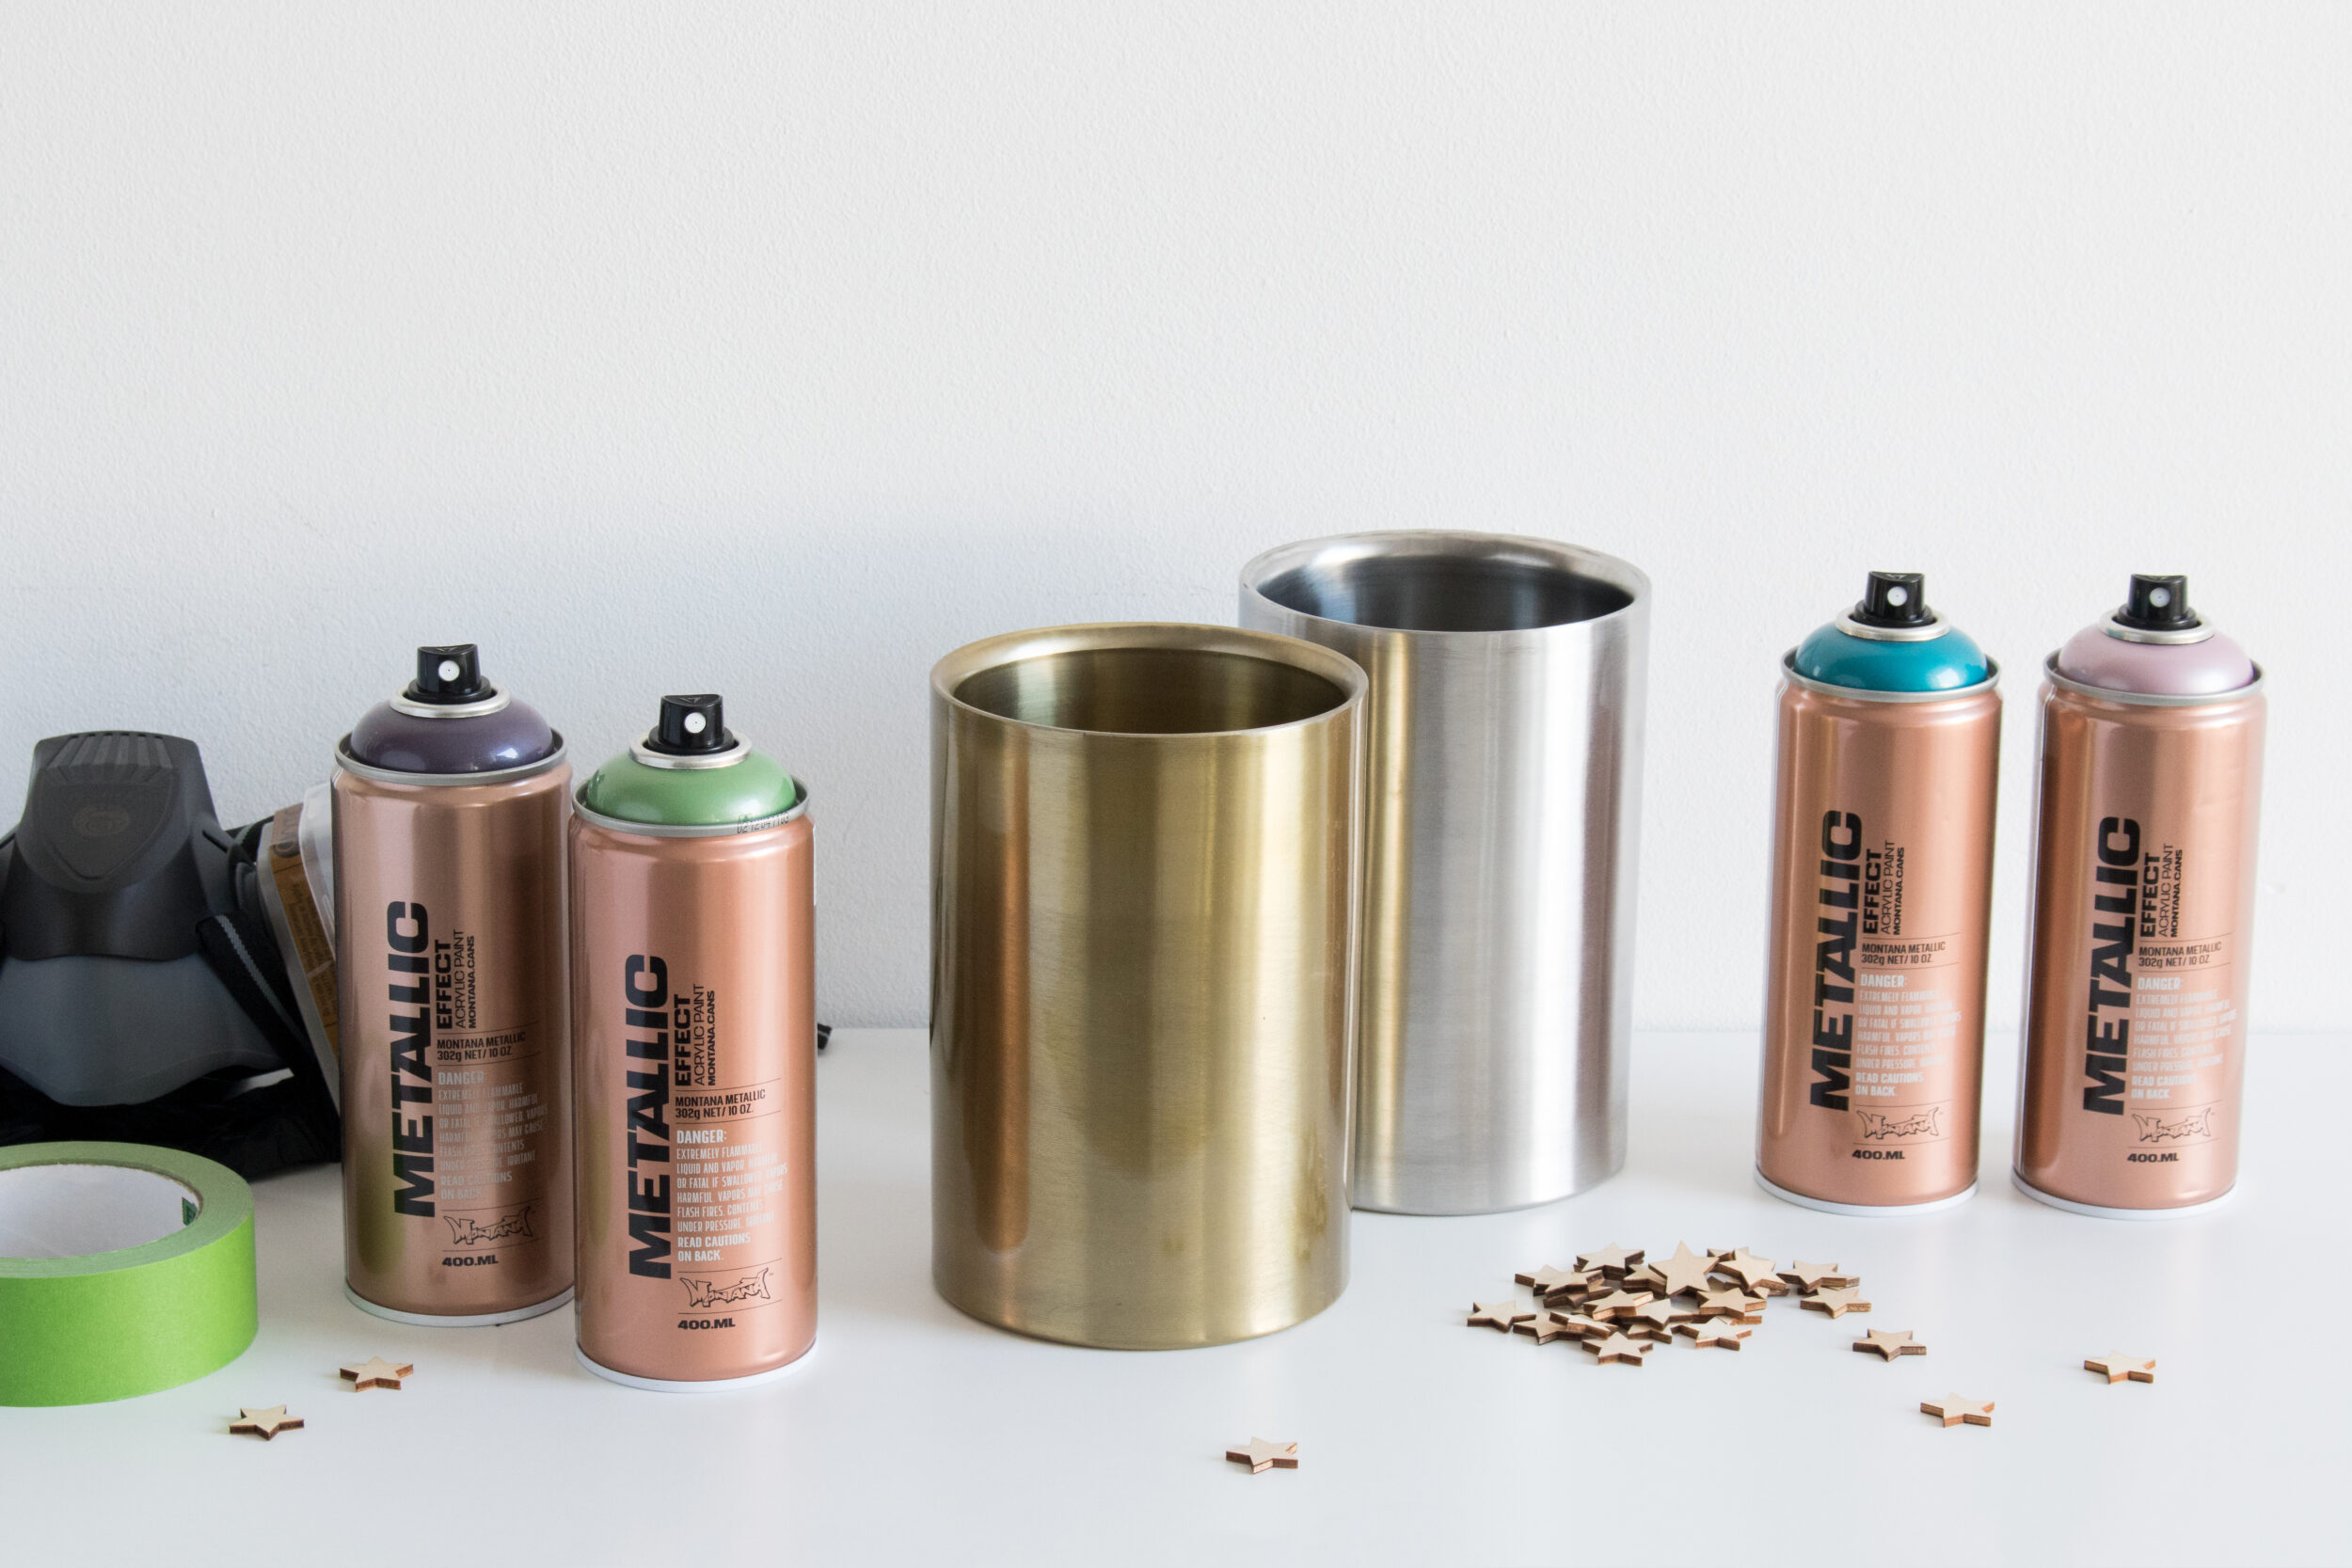 Metallic Wine Coolers Montana Cans allspraypainted